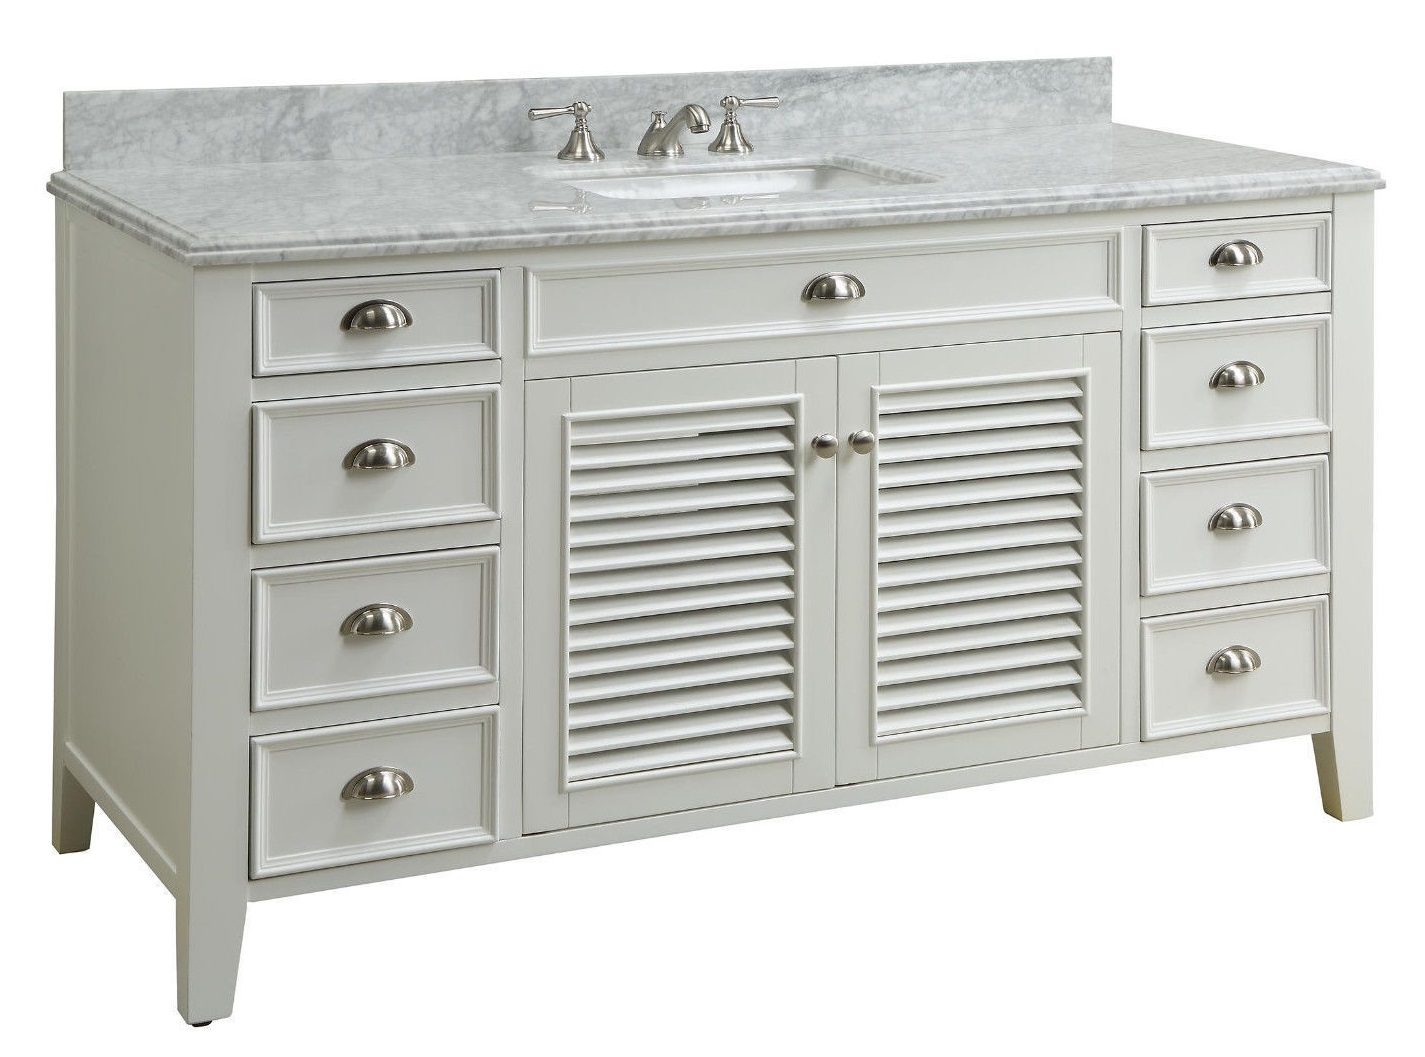 60 Inch Single Sink Bathroom Vanity Cottage Beach Style White Color X21 5 X36 H Cyr3028q60s